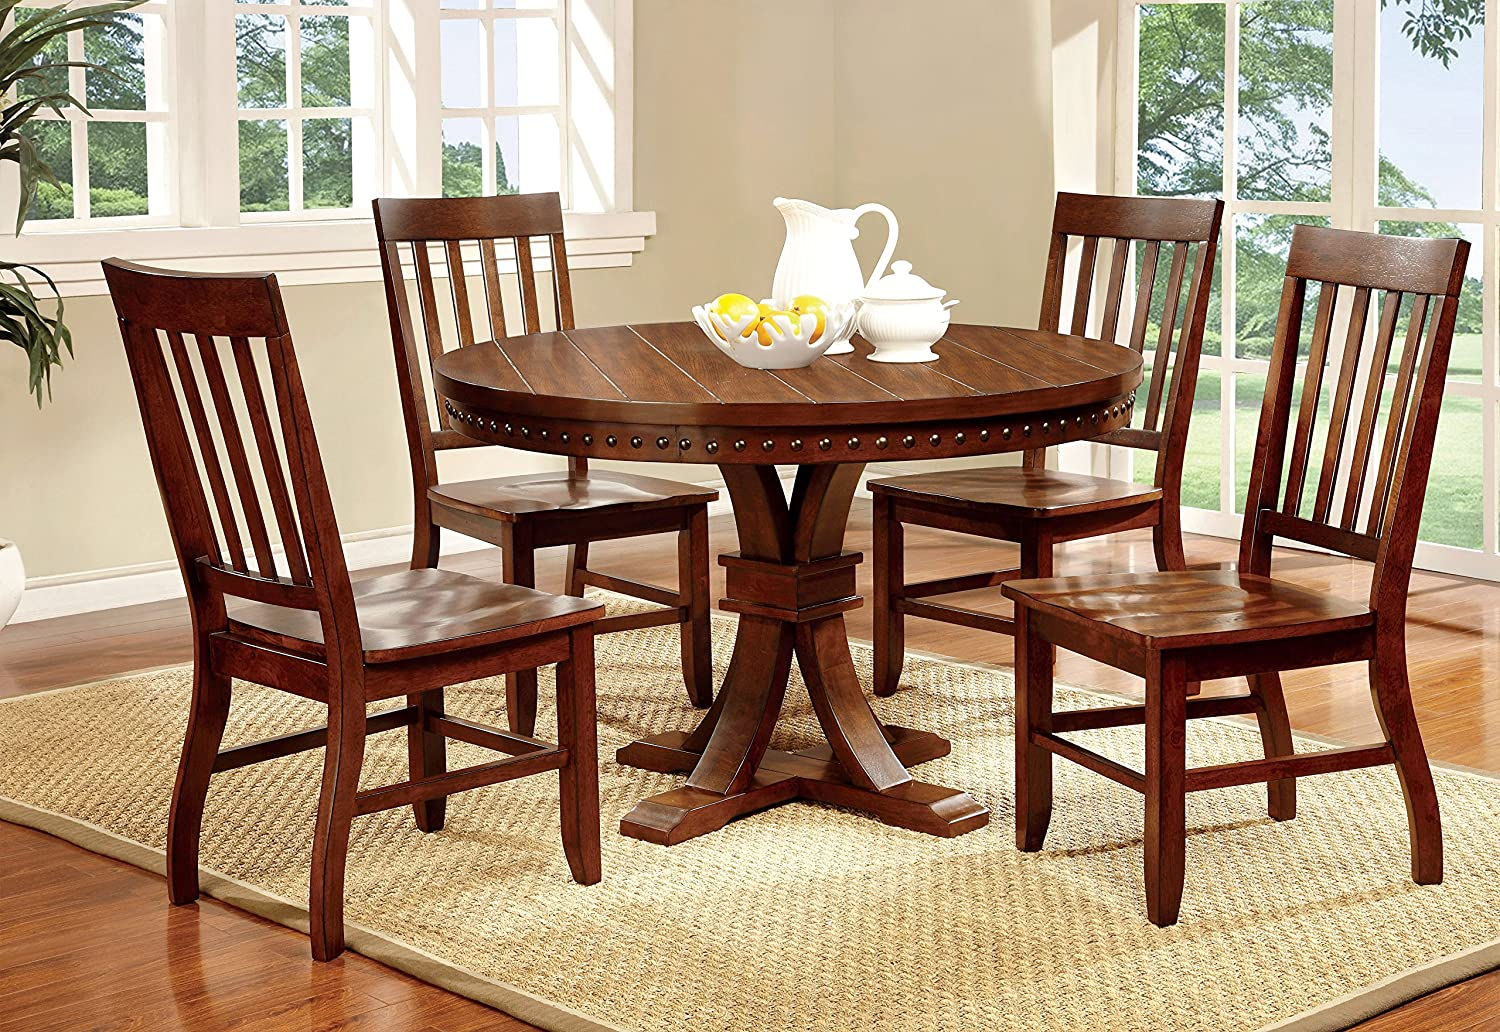 amazoncom furniture of america castile round dining table dark oak tables